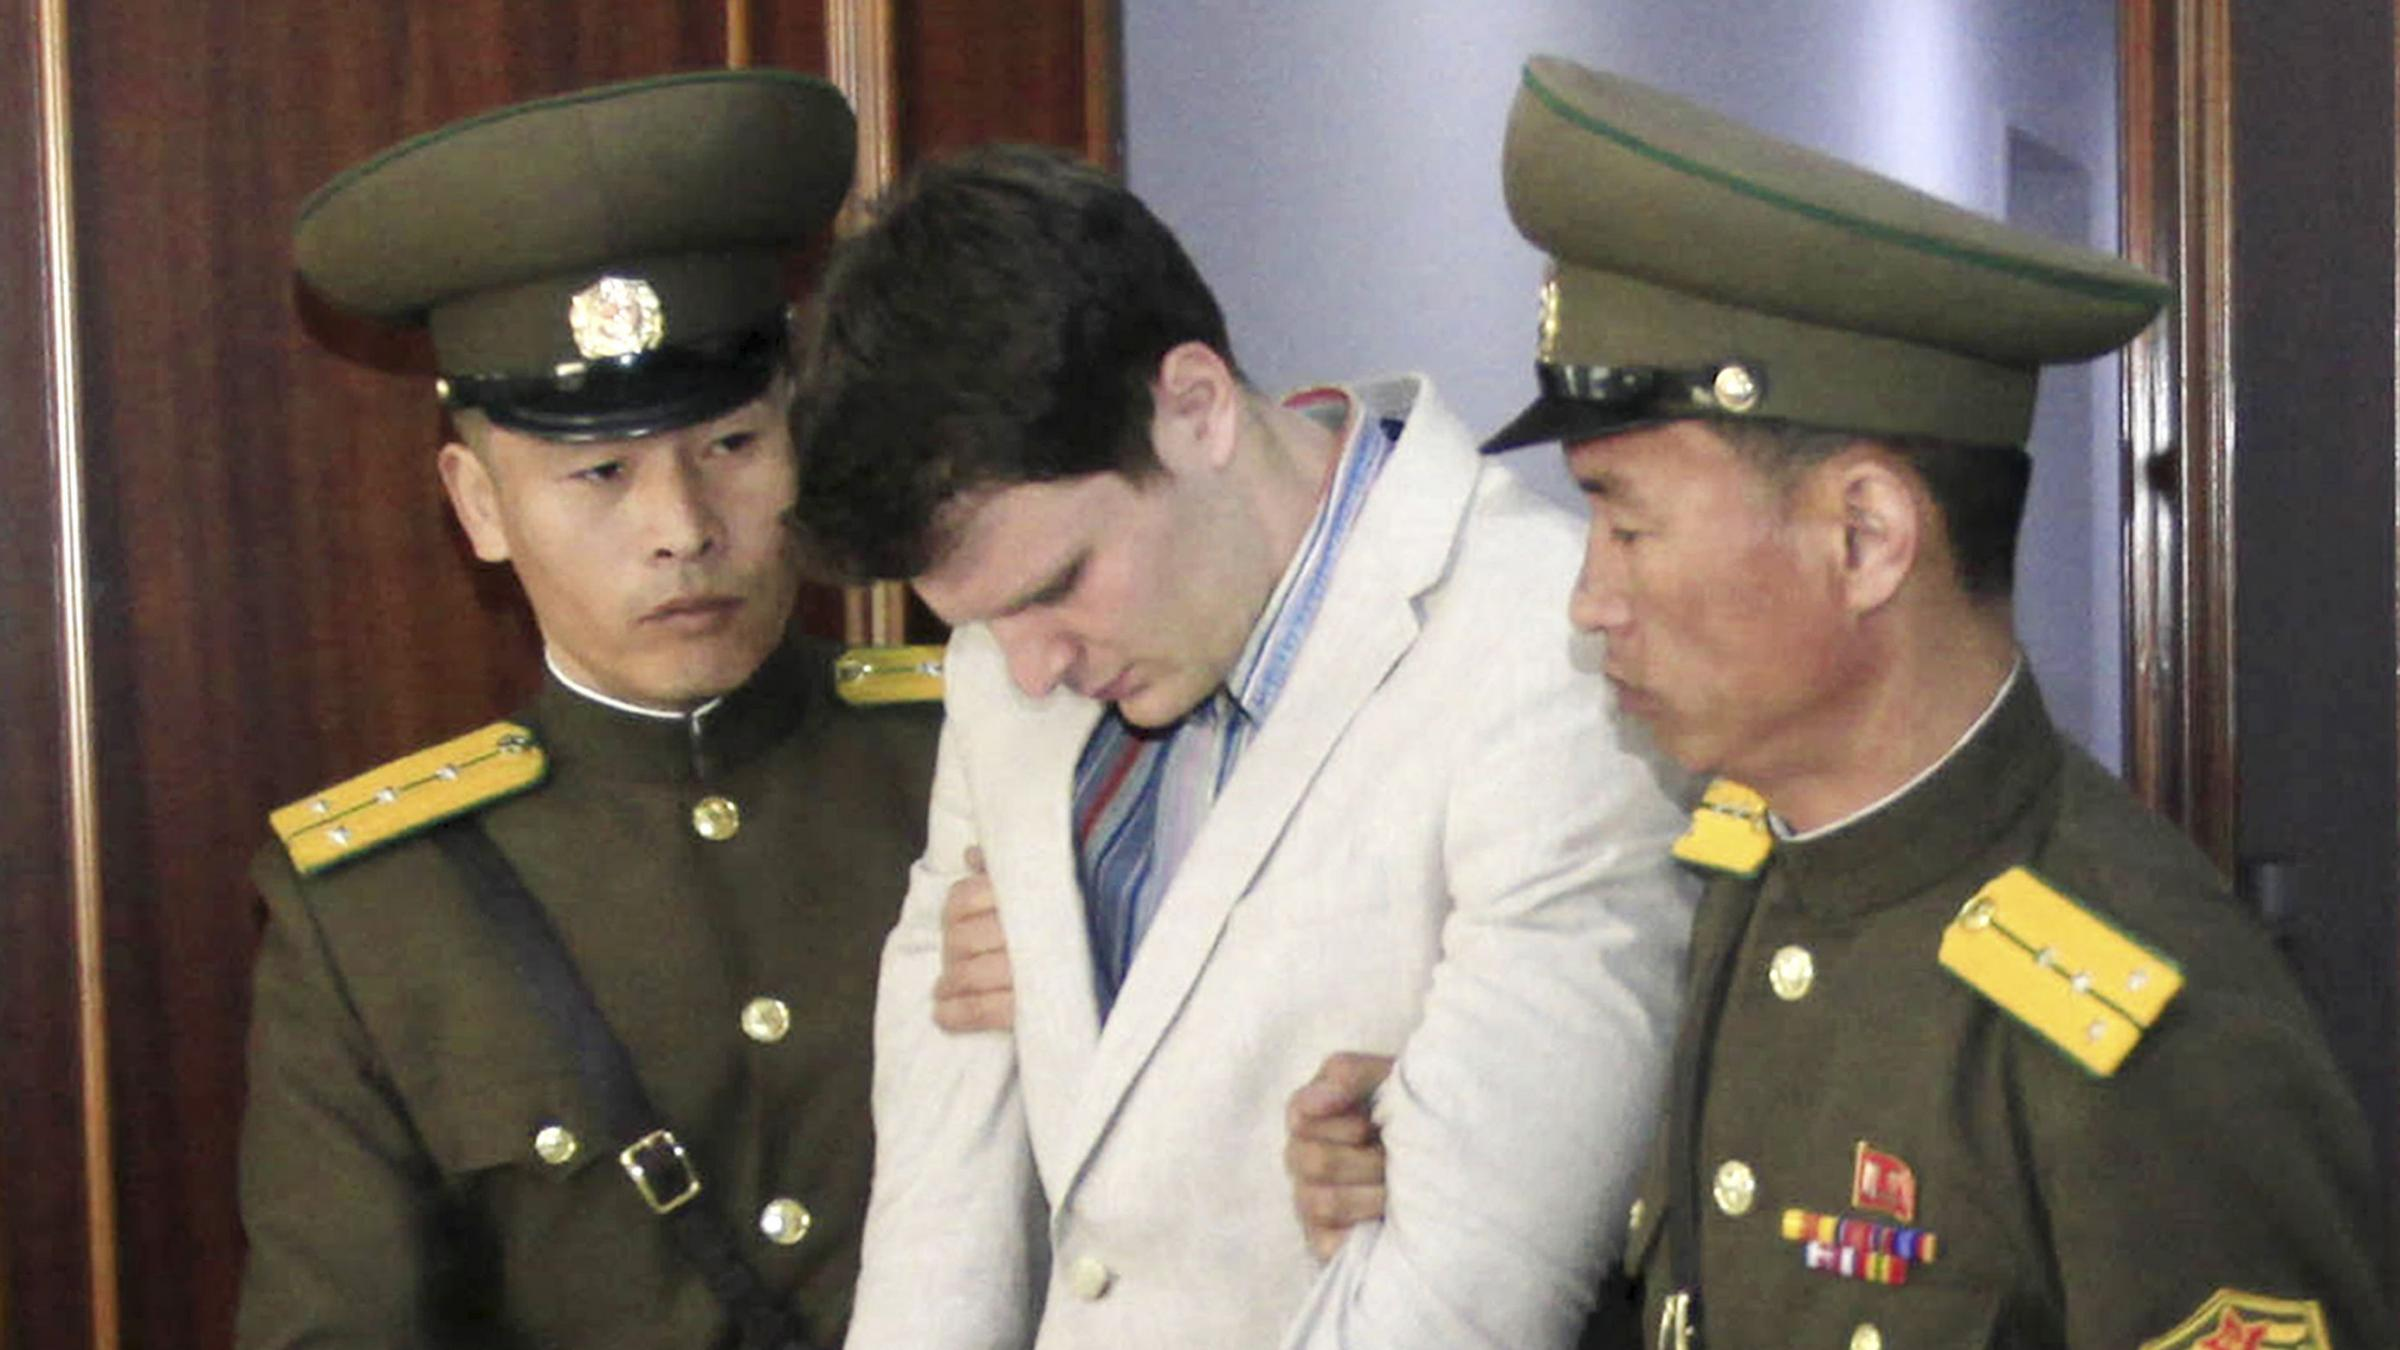 Otto Warmbier's Father Thanks Trump Administration for 'Bringing Otto Home'